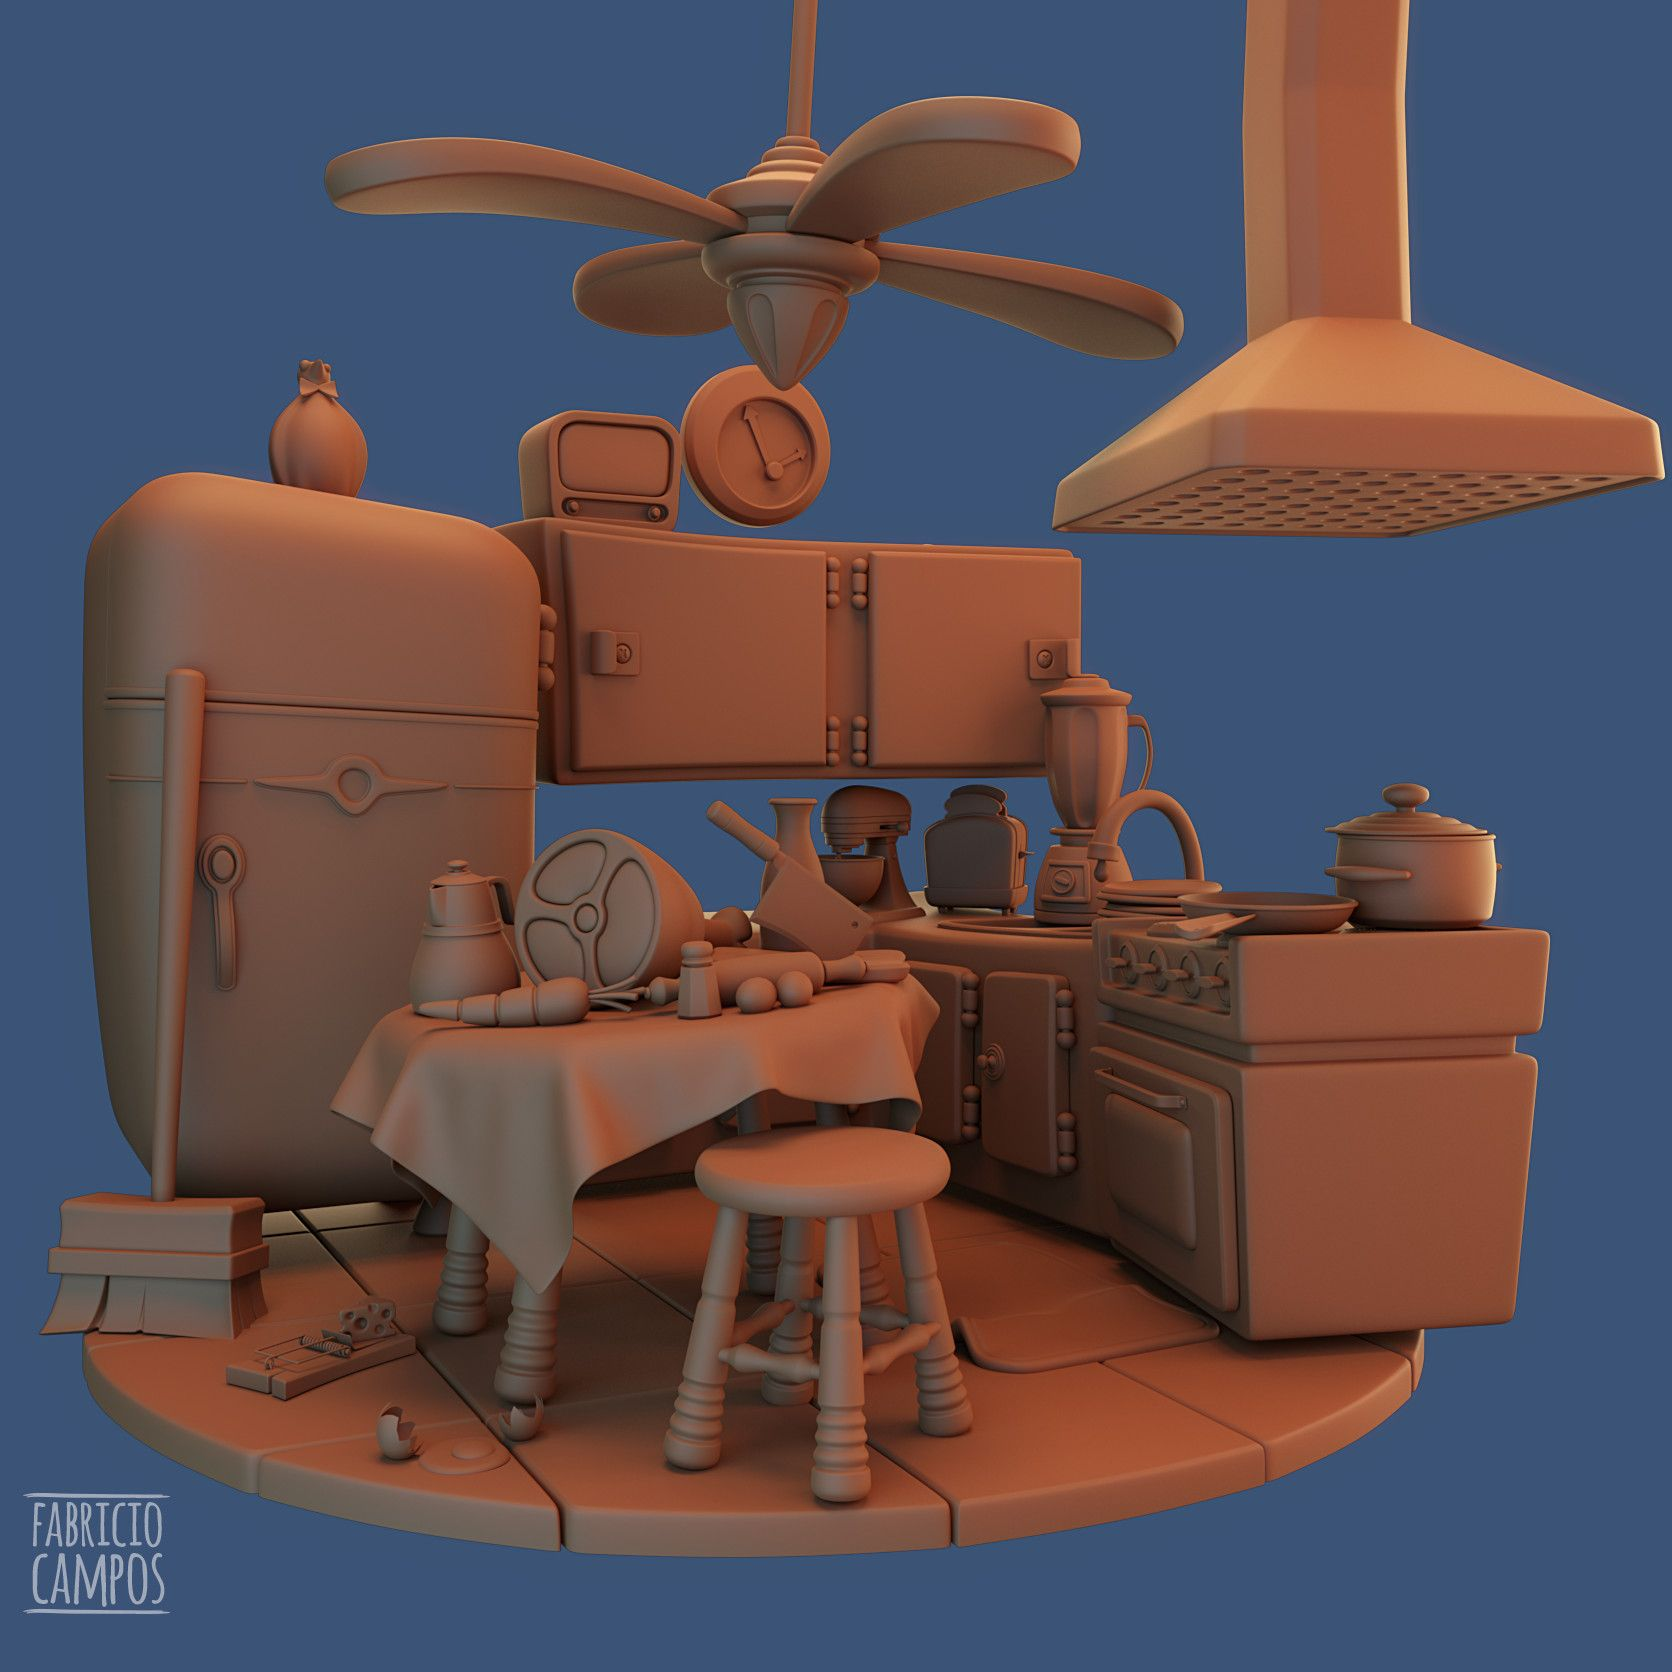 Virtual 3d Home Design Game: ArtStation - Cartoon Kitchen, Fabricio Campos